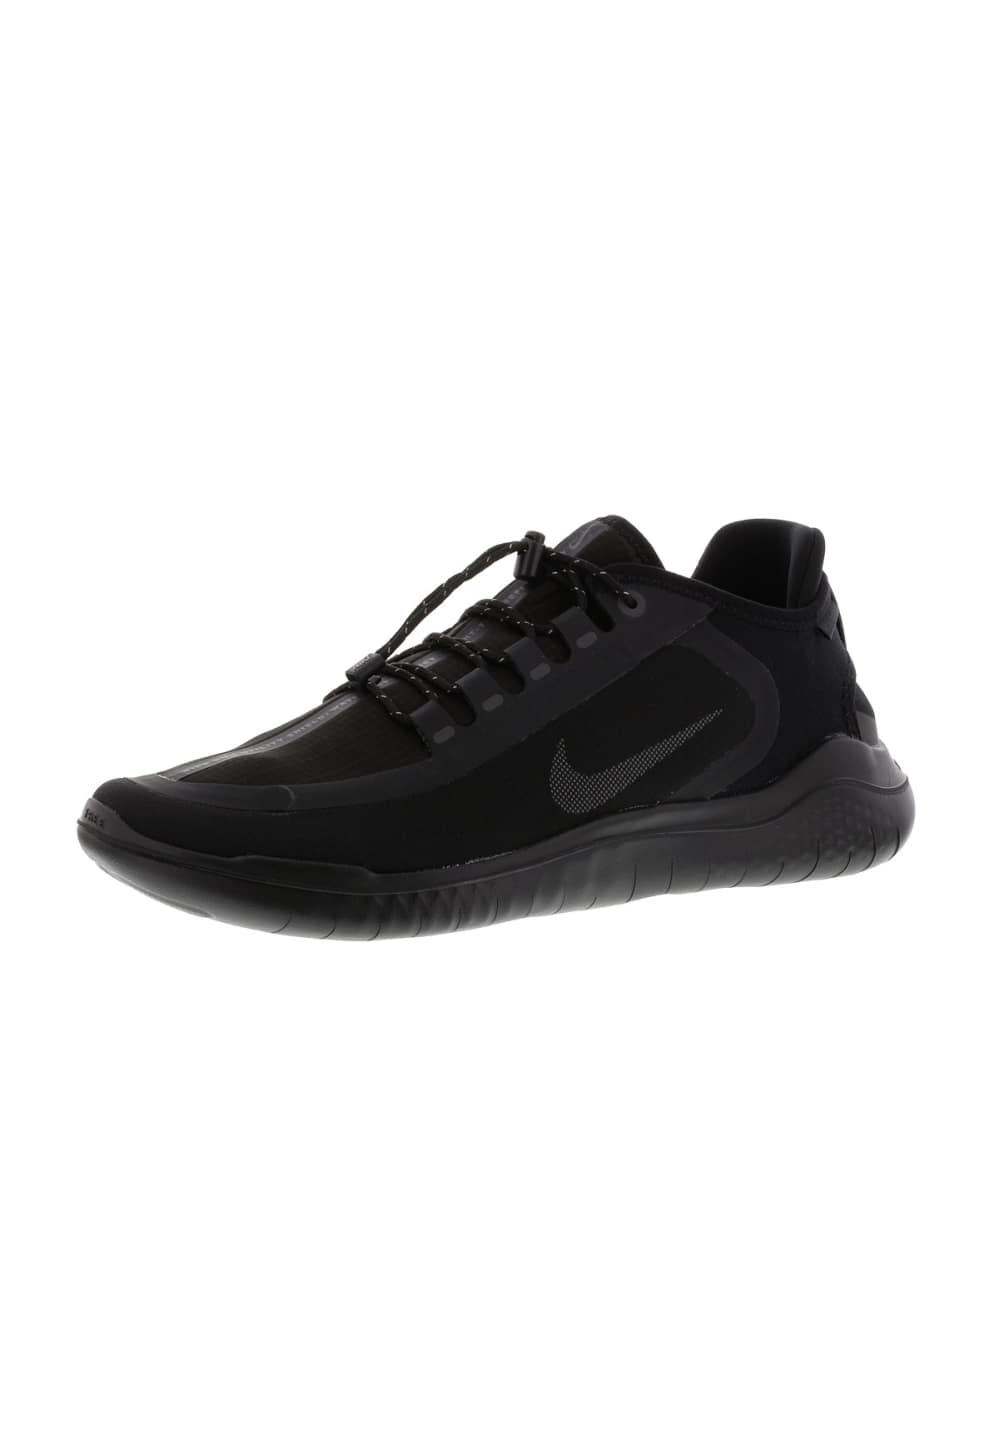 ebe100eae5d35 Next. -30%. This product is currently out of stock. Nike. Air Zoom Pegasus  35 Shield - Running shoes ...